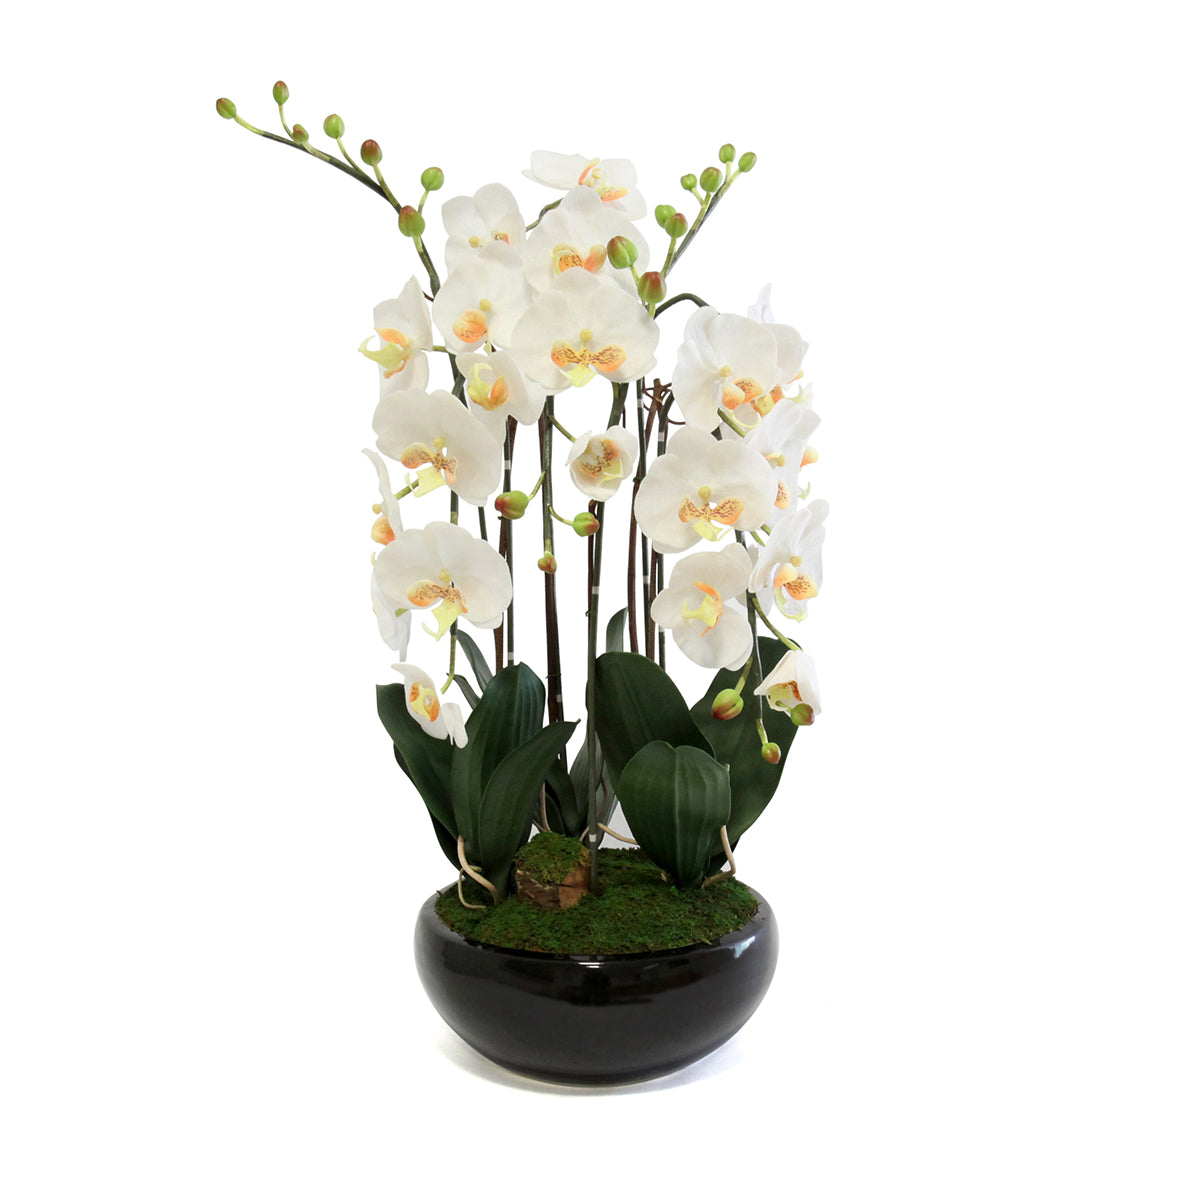 Phalaenopsis In Round Black Pot - Wh/Yel (M)